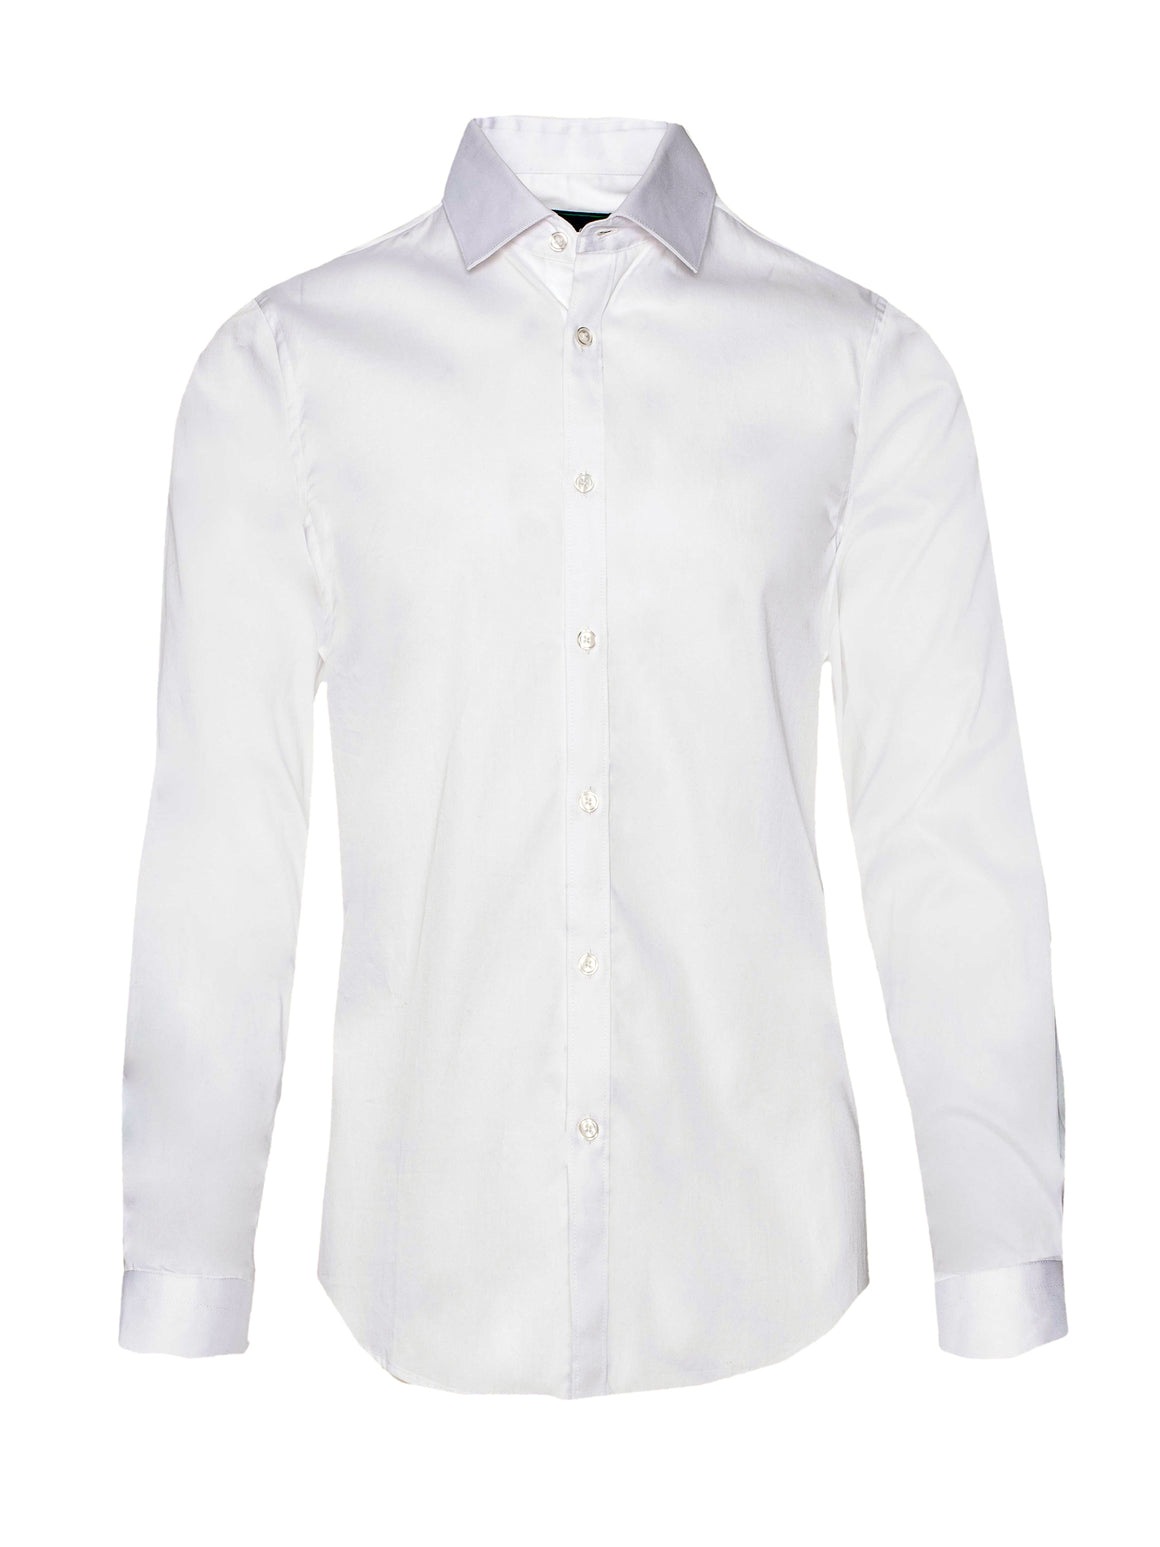 Spread Collar Dress Shirt - White